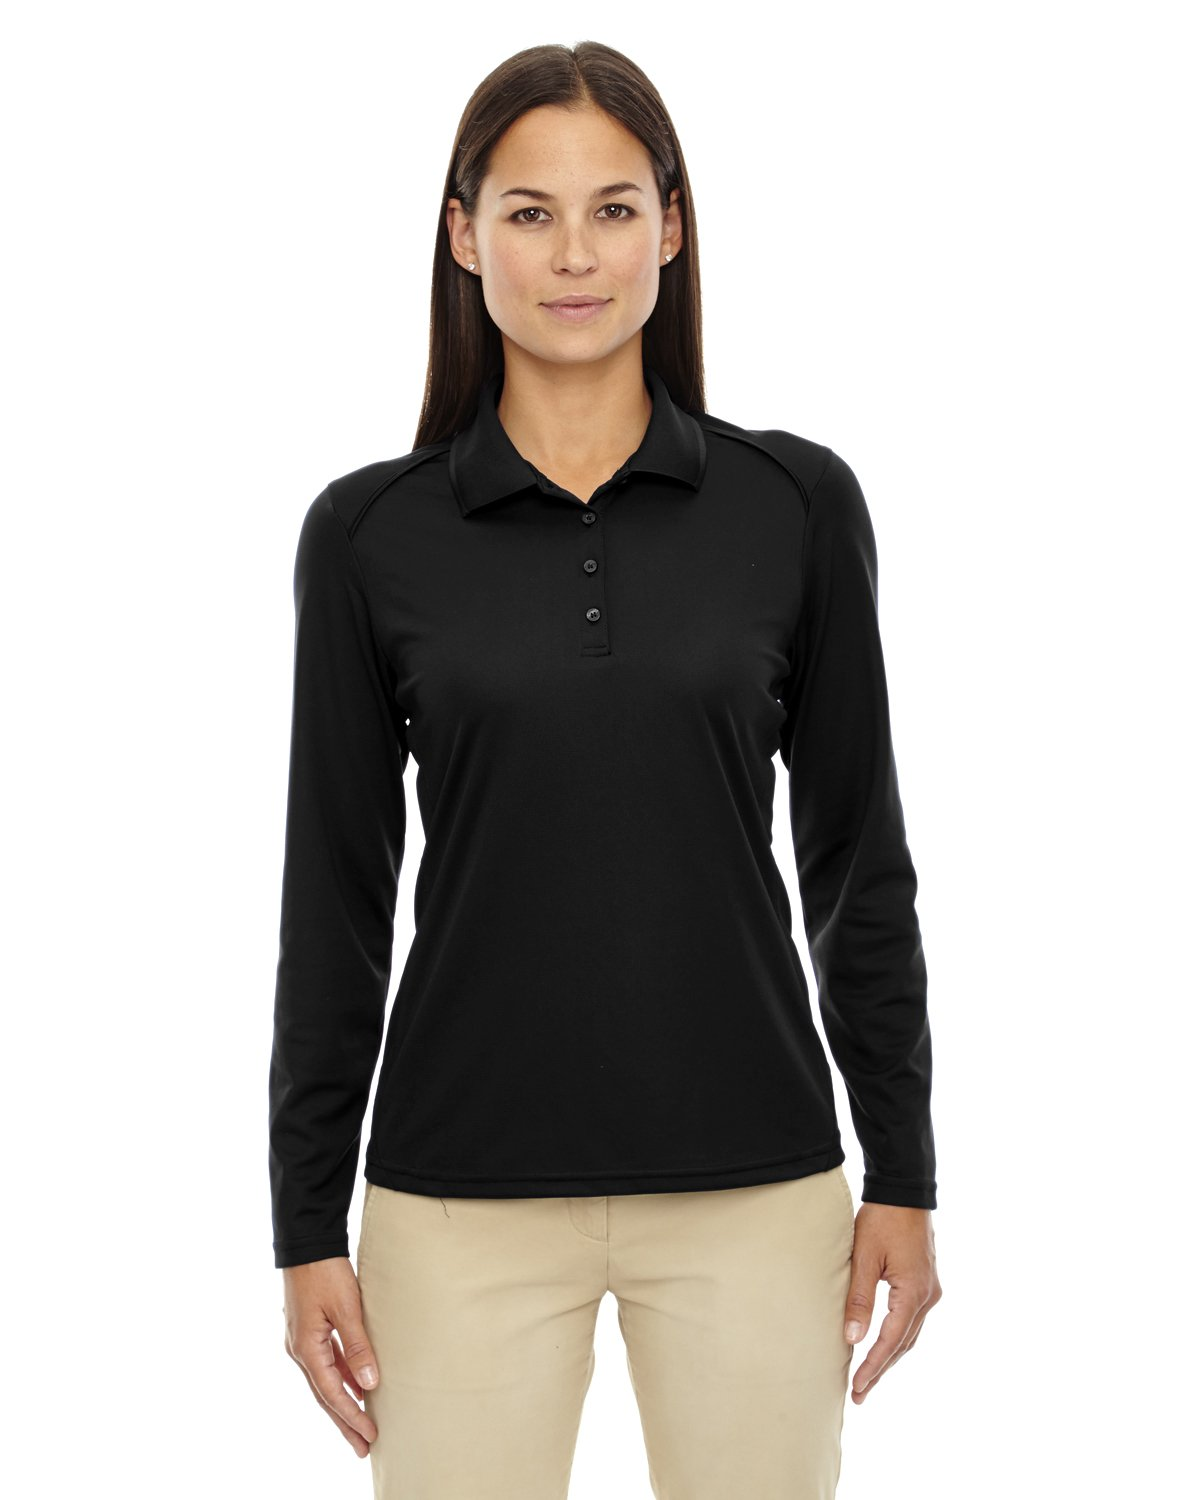 Ash City Ladies Armour Long Sleeve Polo (Large, Black) by Ash City Apparel